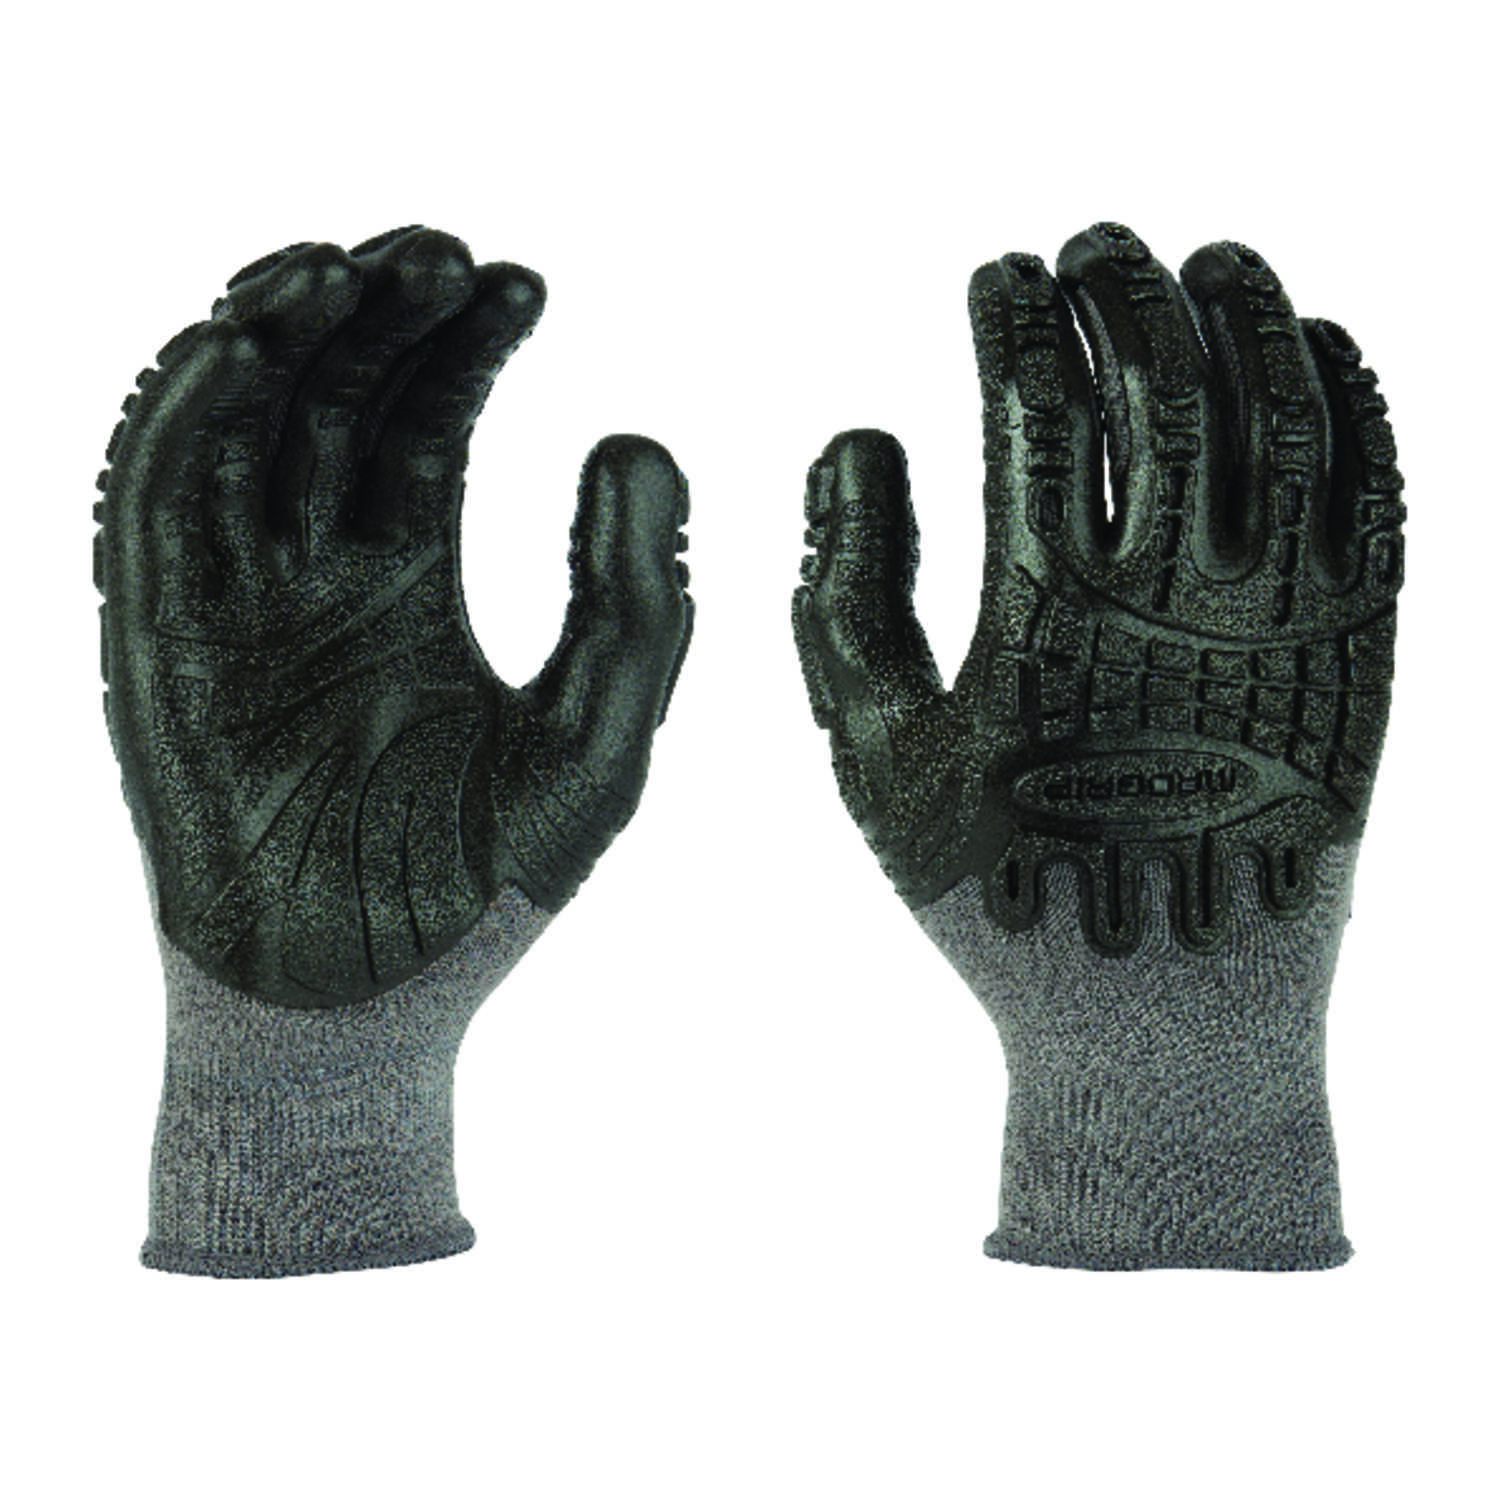 Madgrip  Thunderdome  Unisex  Rubber  Coated  Work Gloves  Black  M